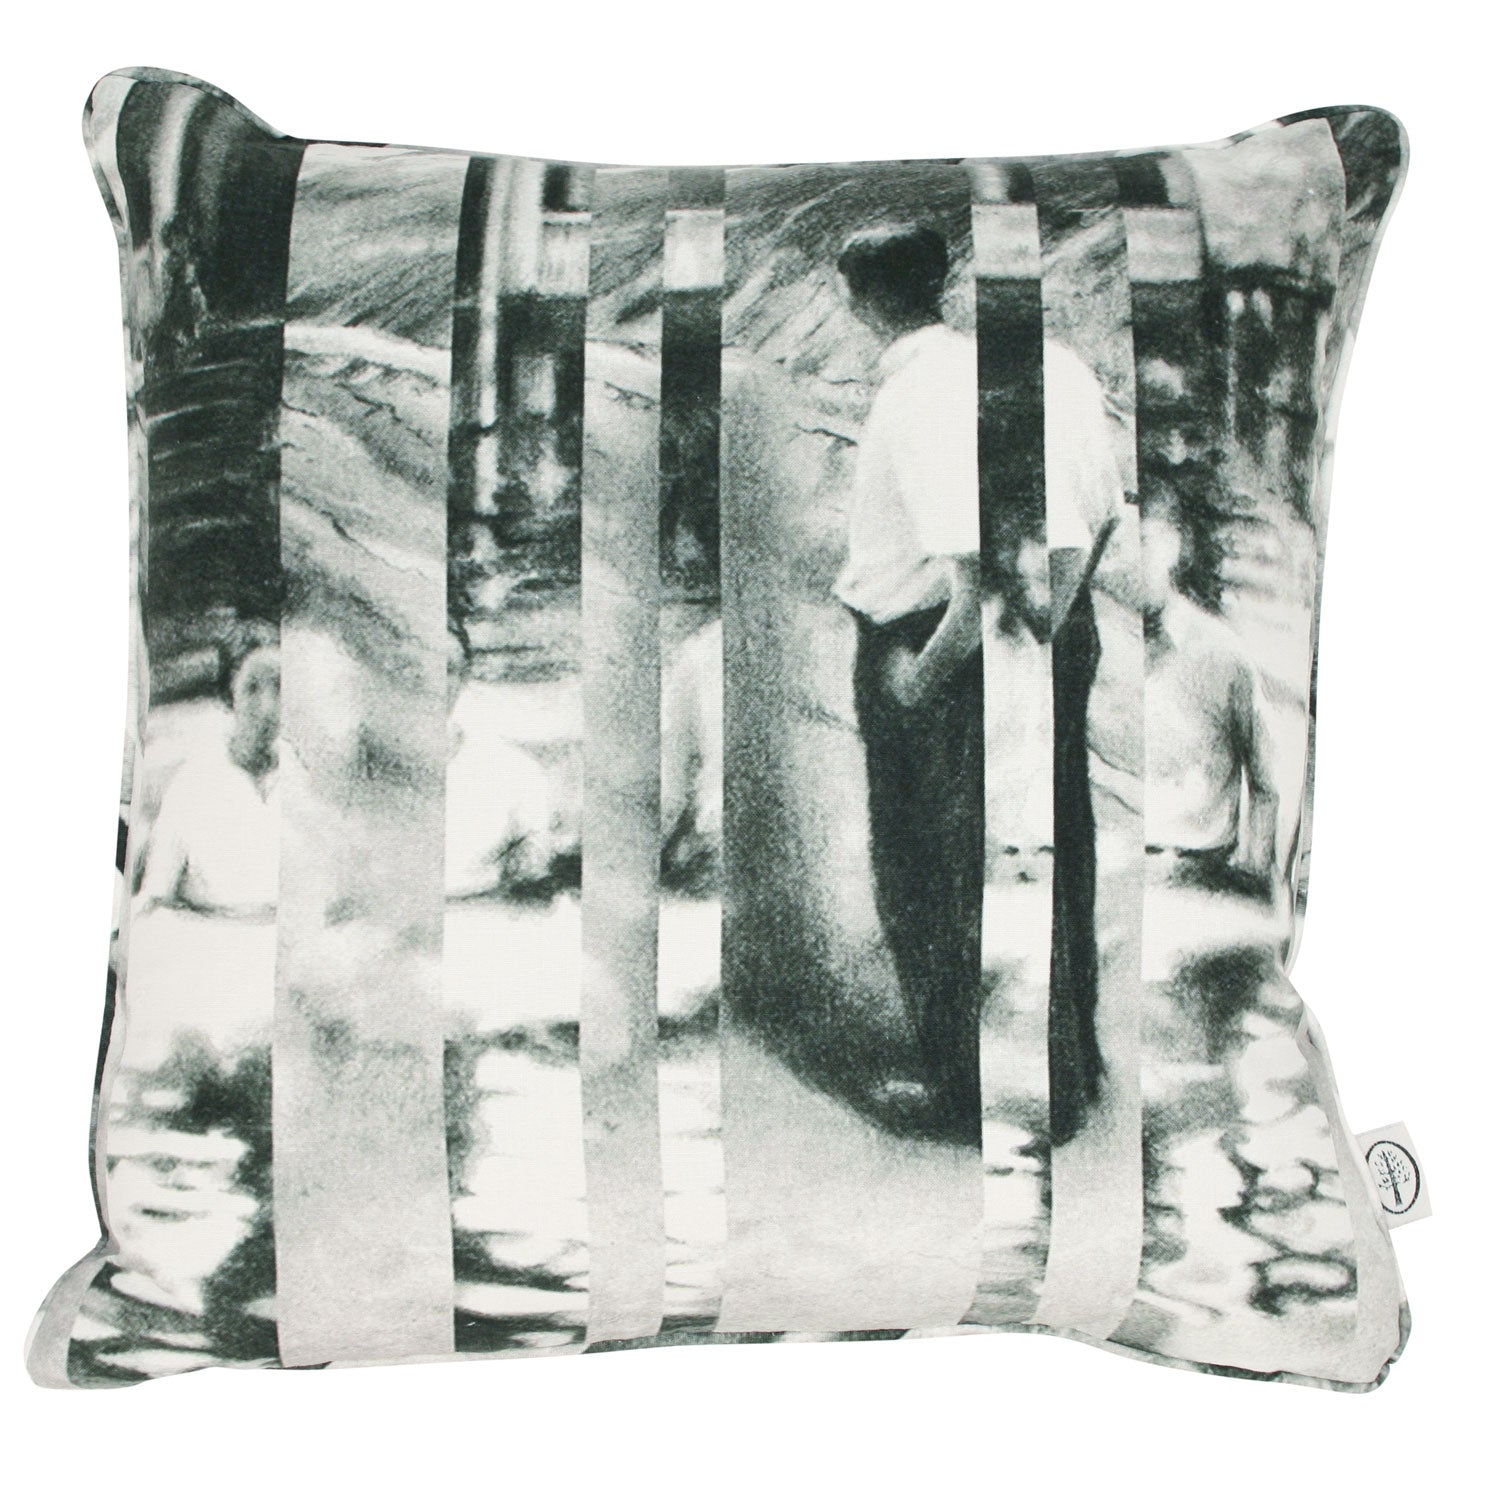 Between Certainty and Oblivion Linen Cushion